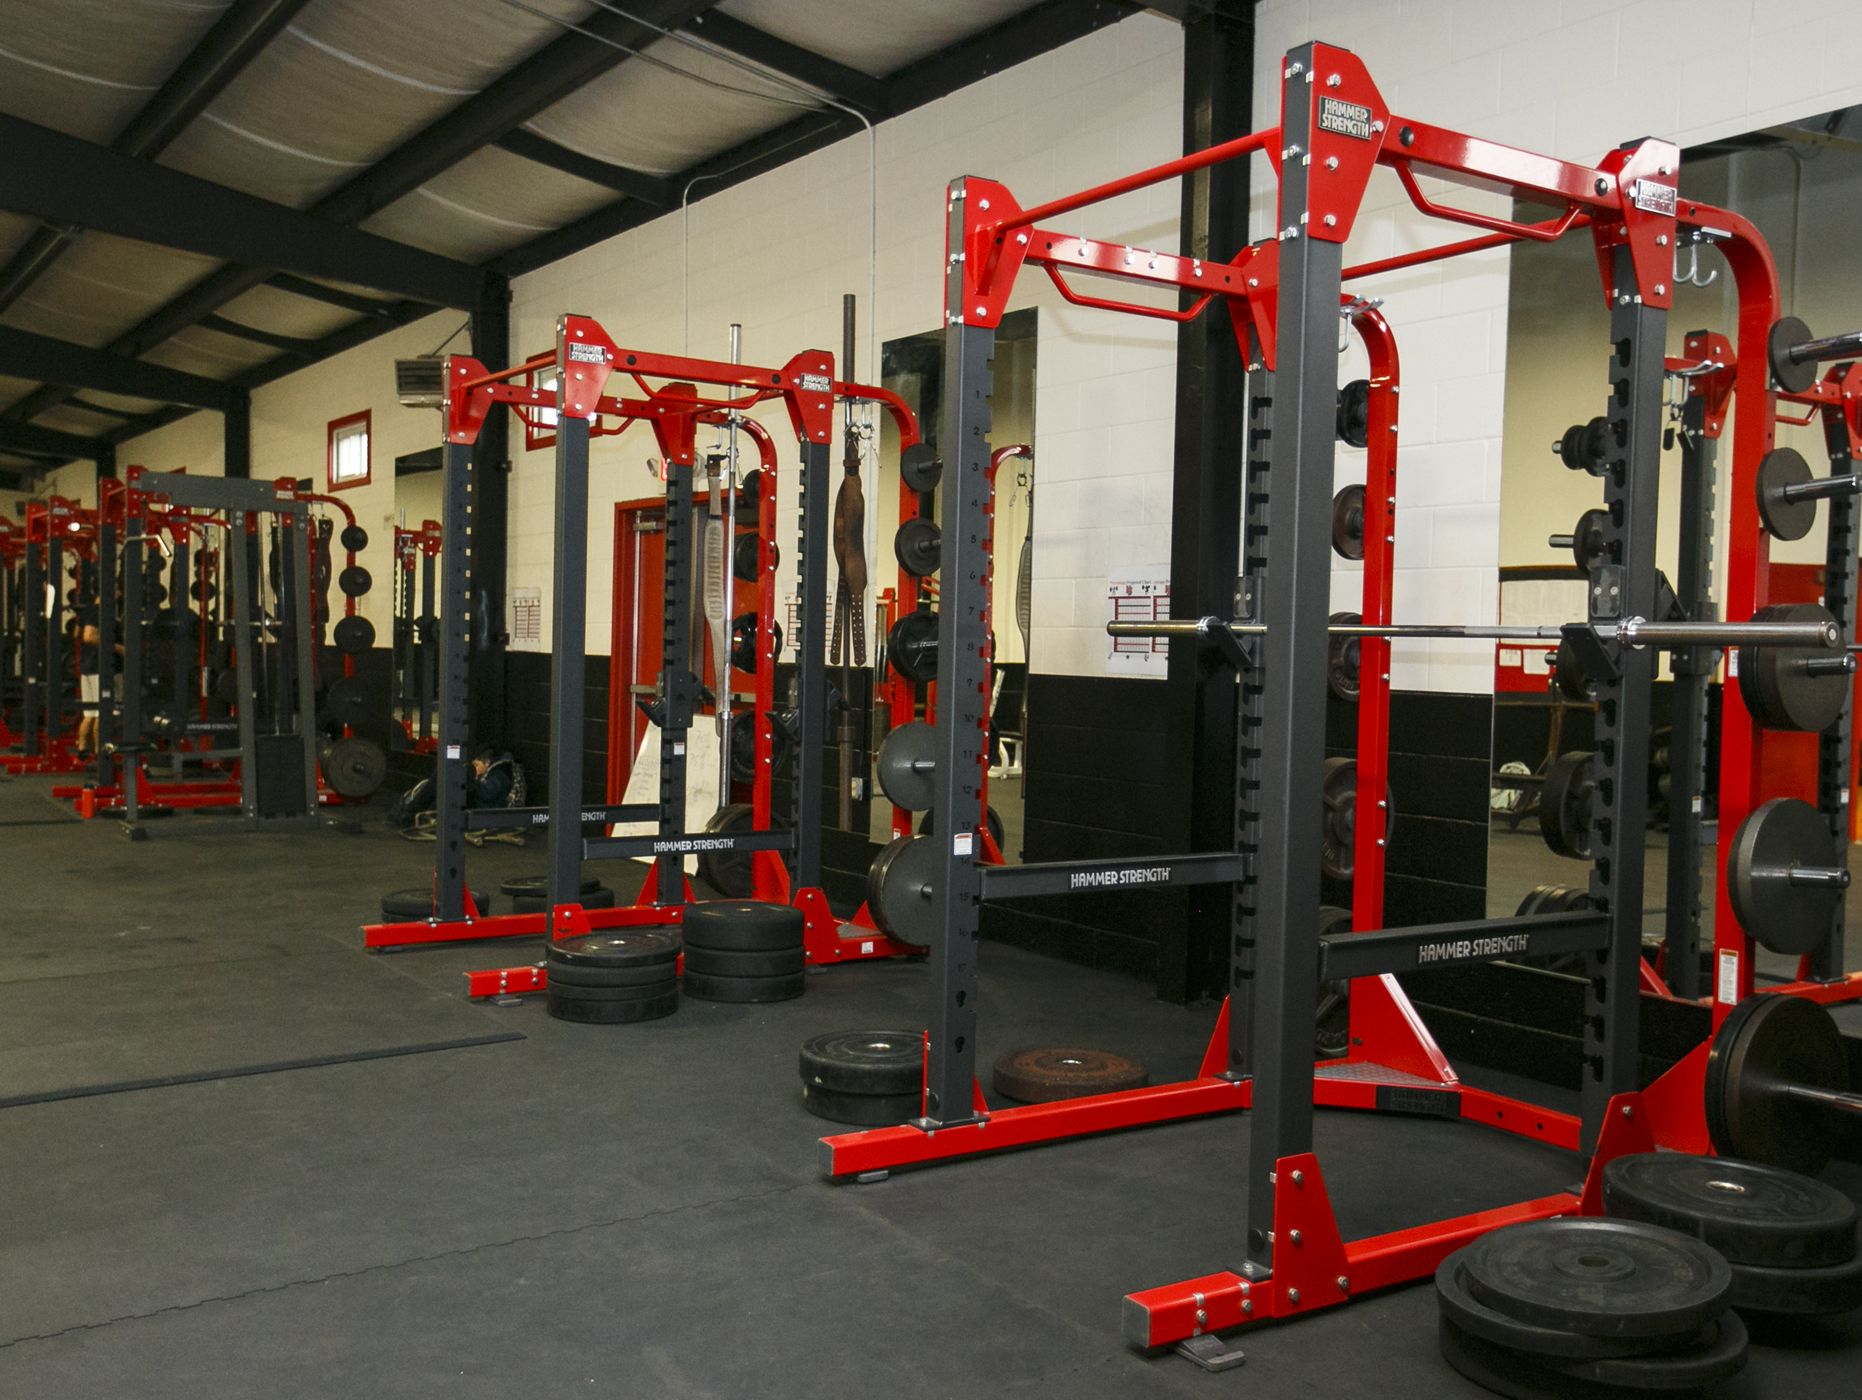 Squat racks in North Salem High School's newly remodeled weight room on Tuesday, Feb. 14, 2017. The facility includes new rubber floors, eight new weight lifting racks, four new spin bikes and new free weights.